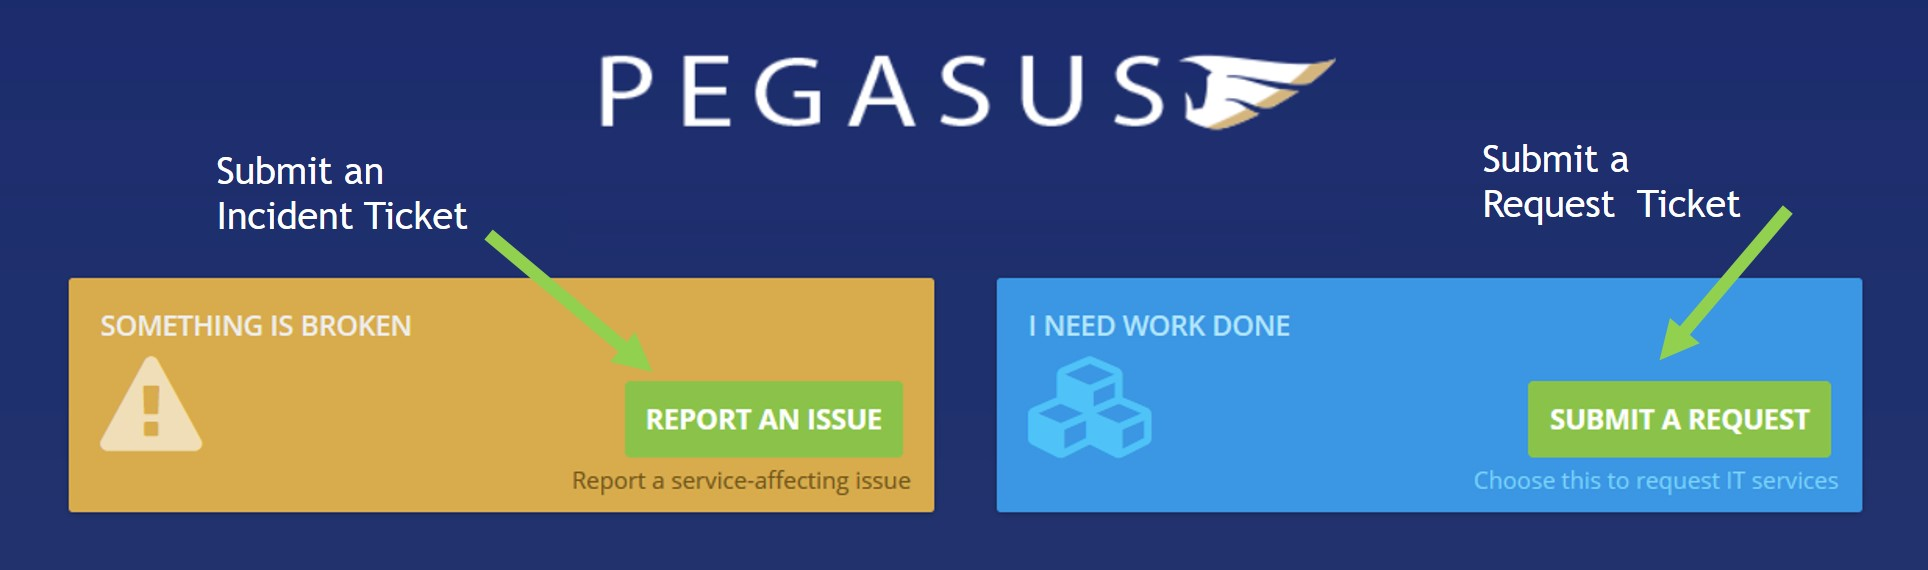 Pegasus Ticket Portal.jpg